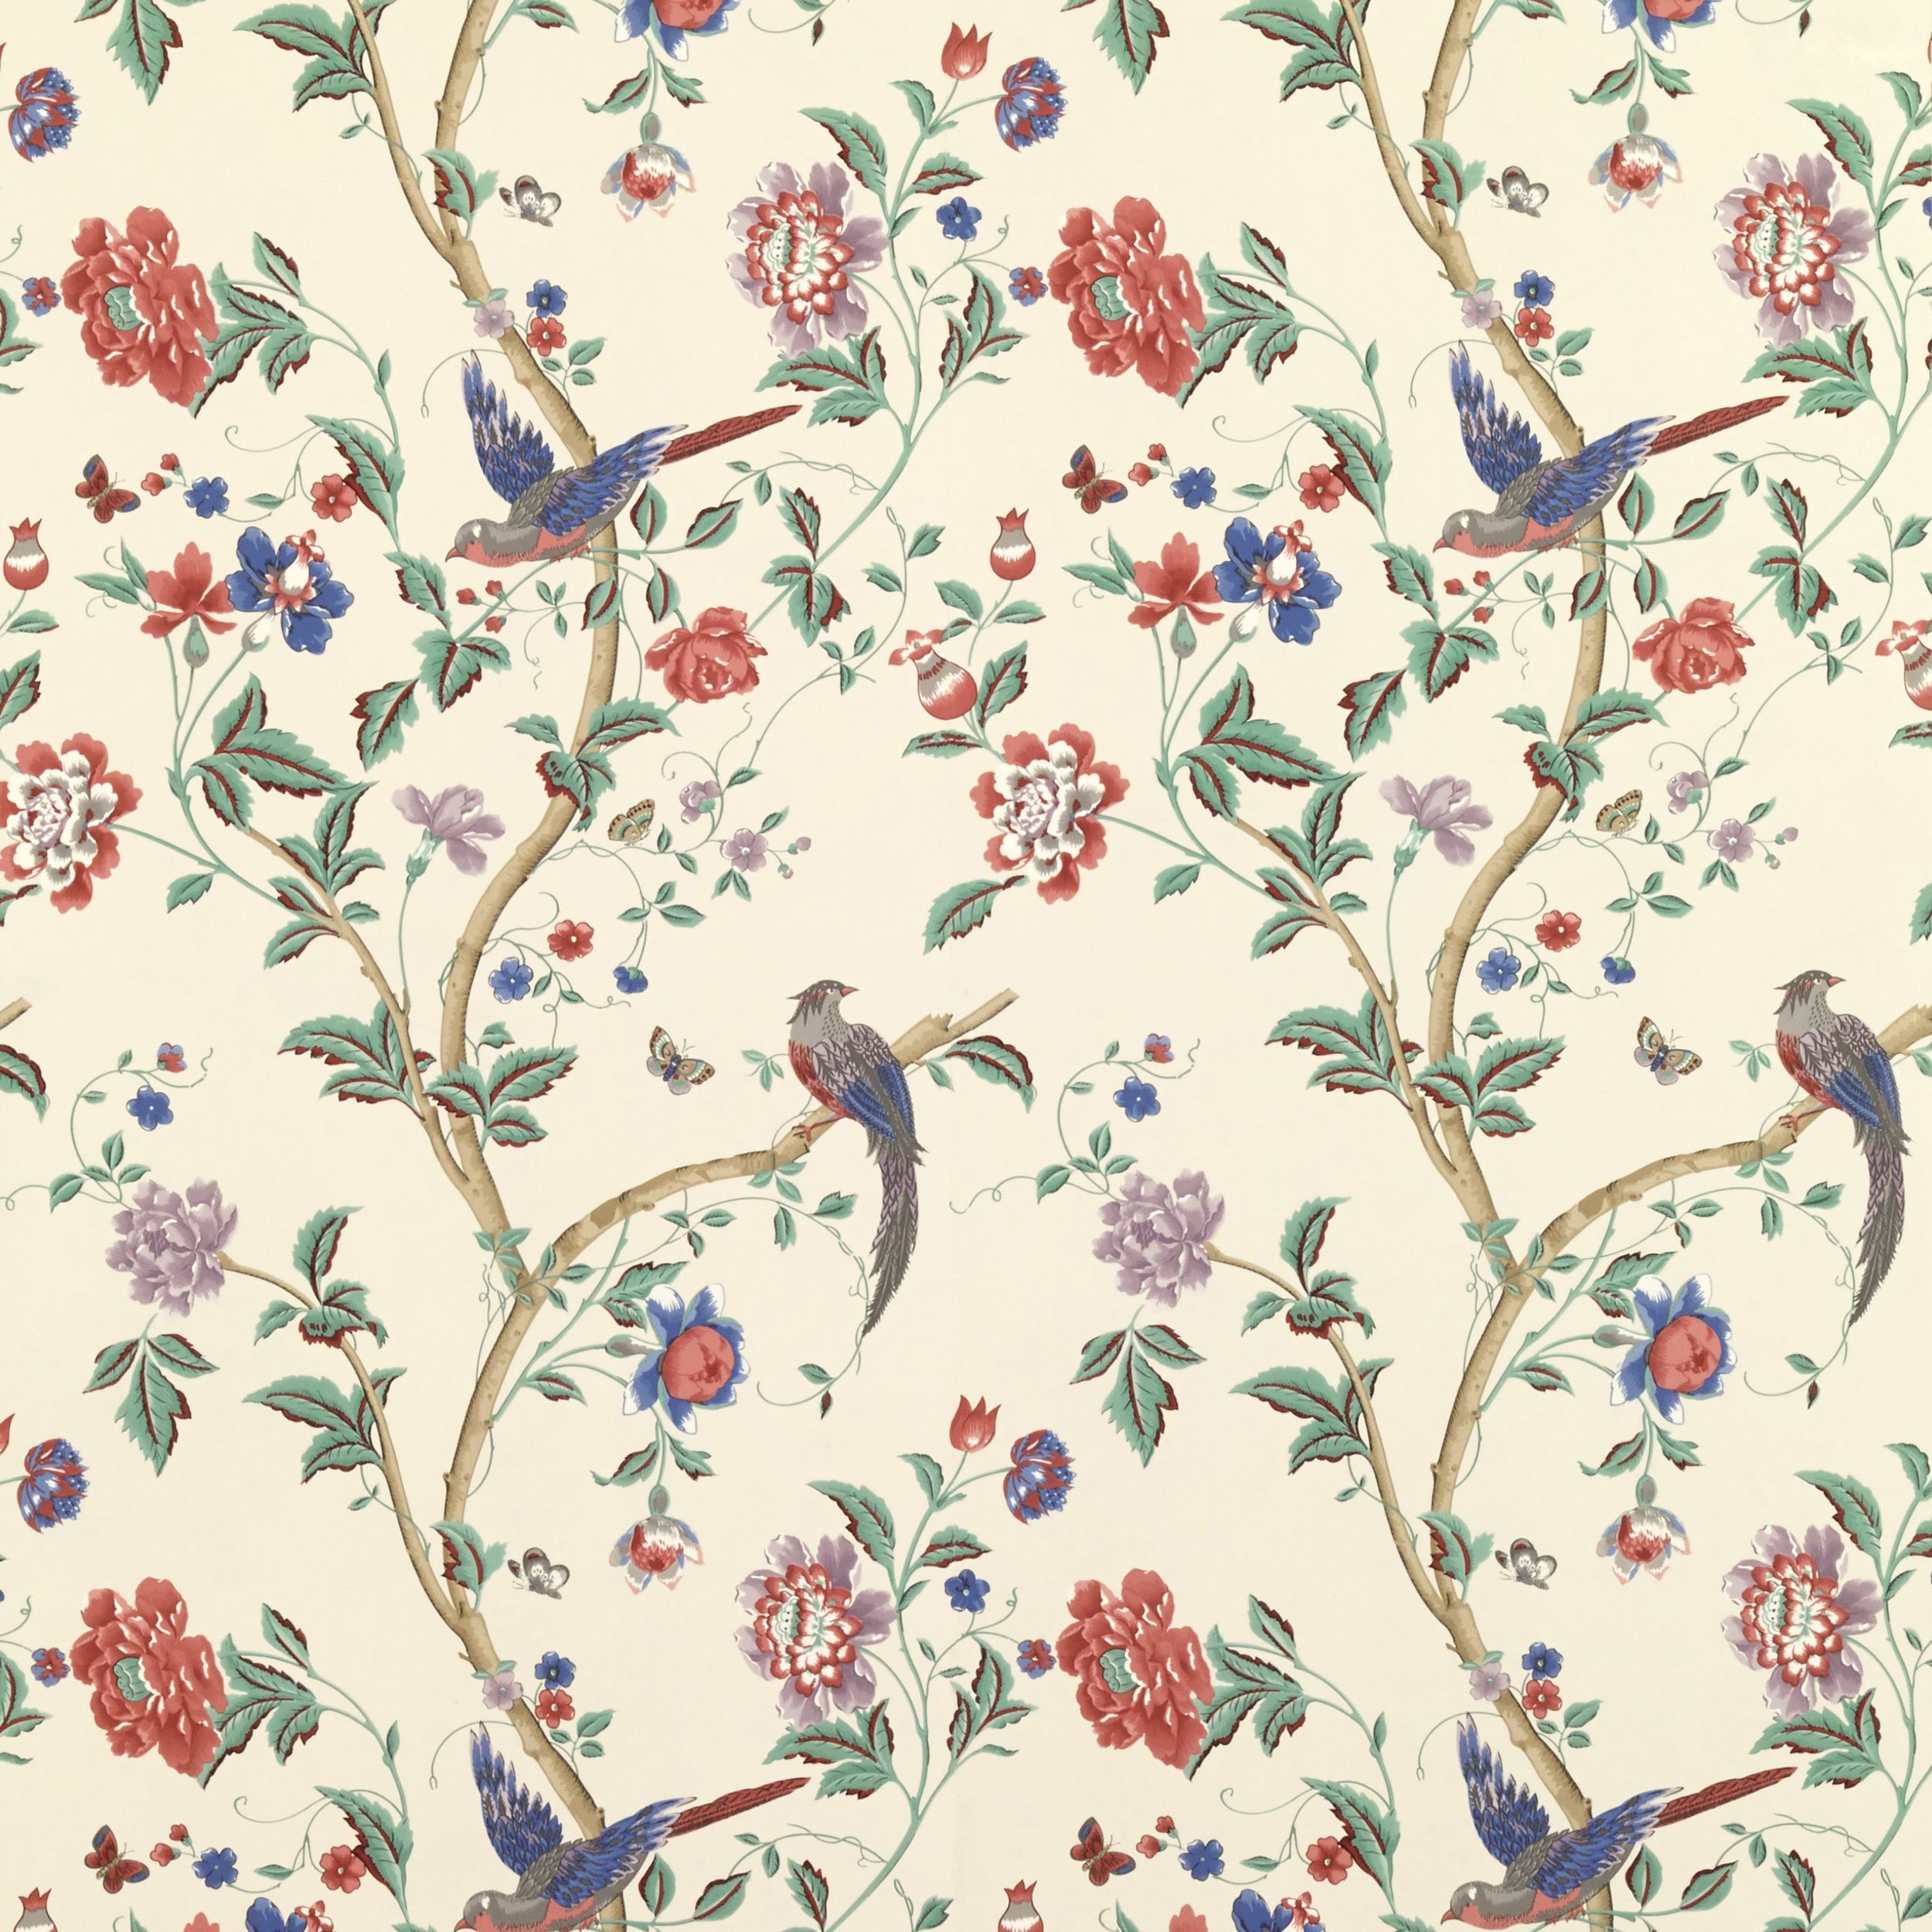 LauraAshleySS14 love love this wallpaper. it's looks